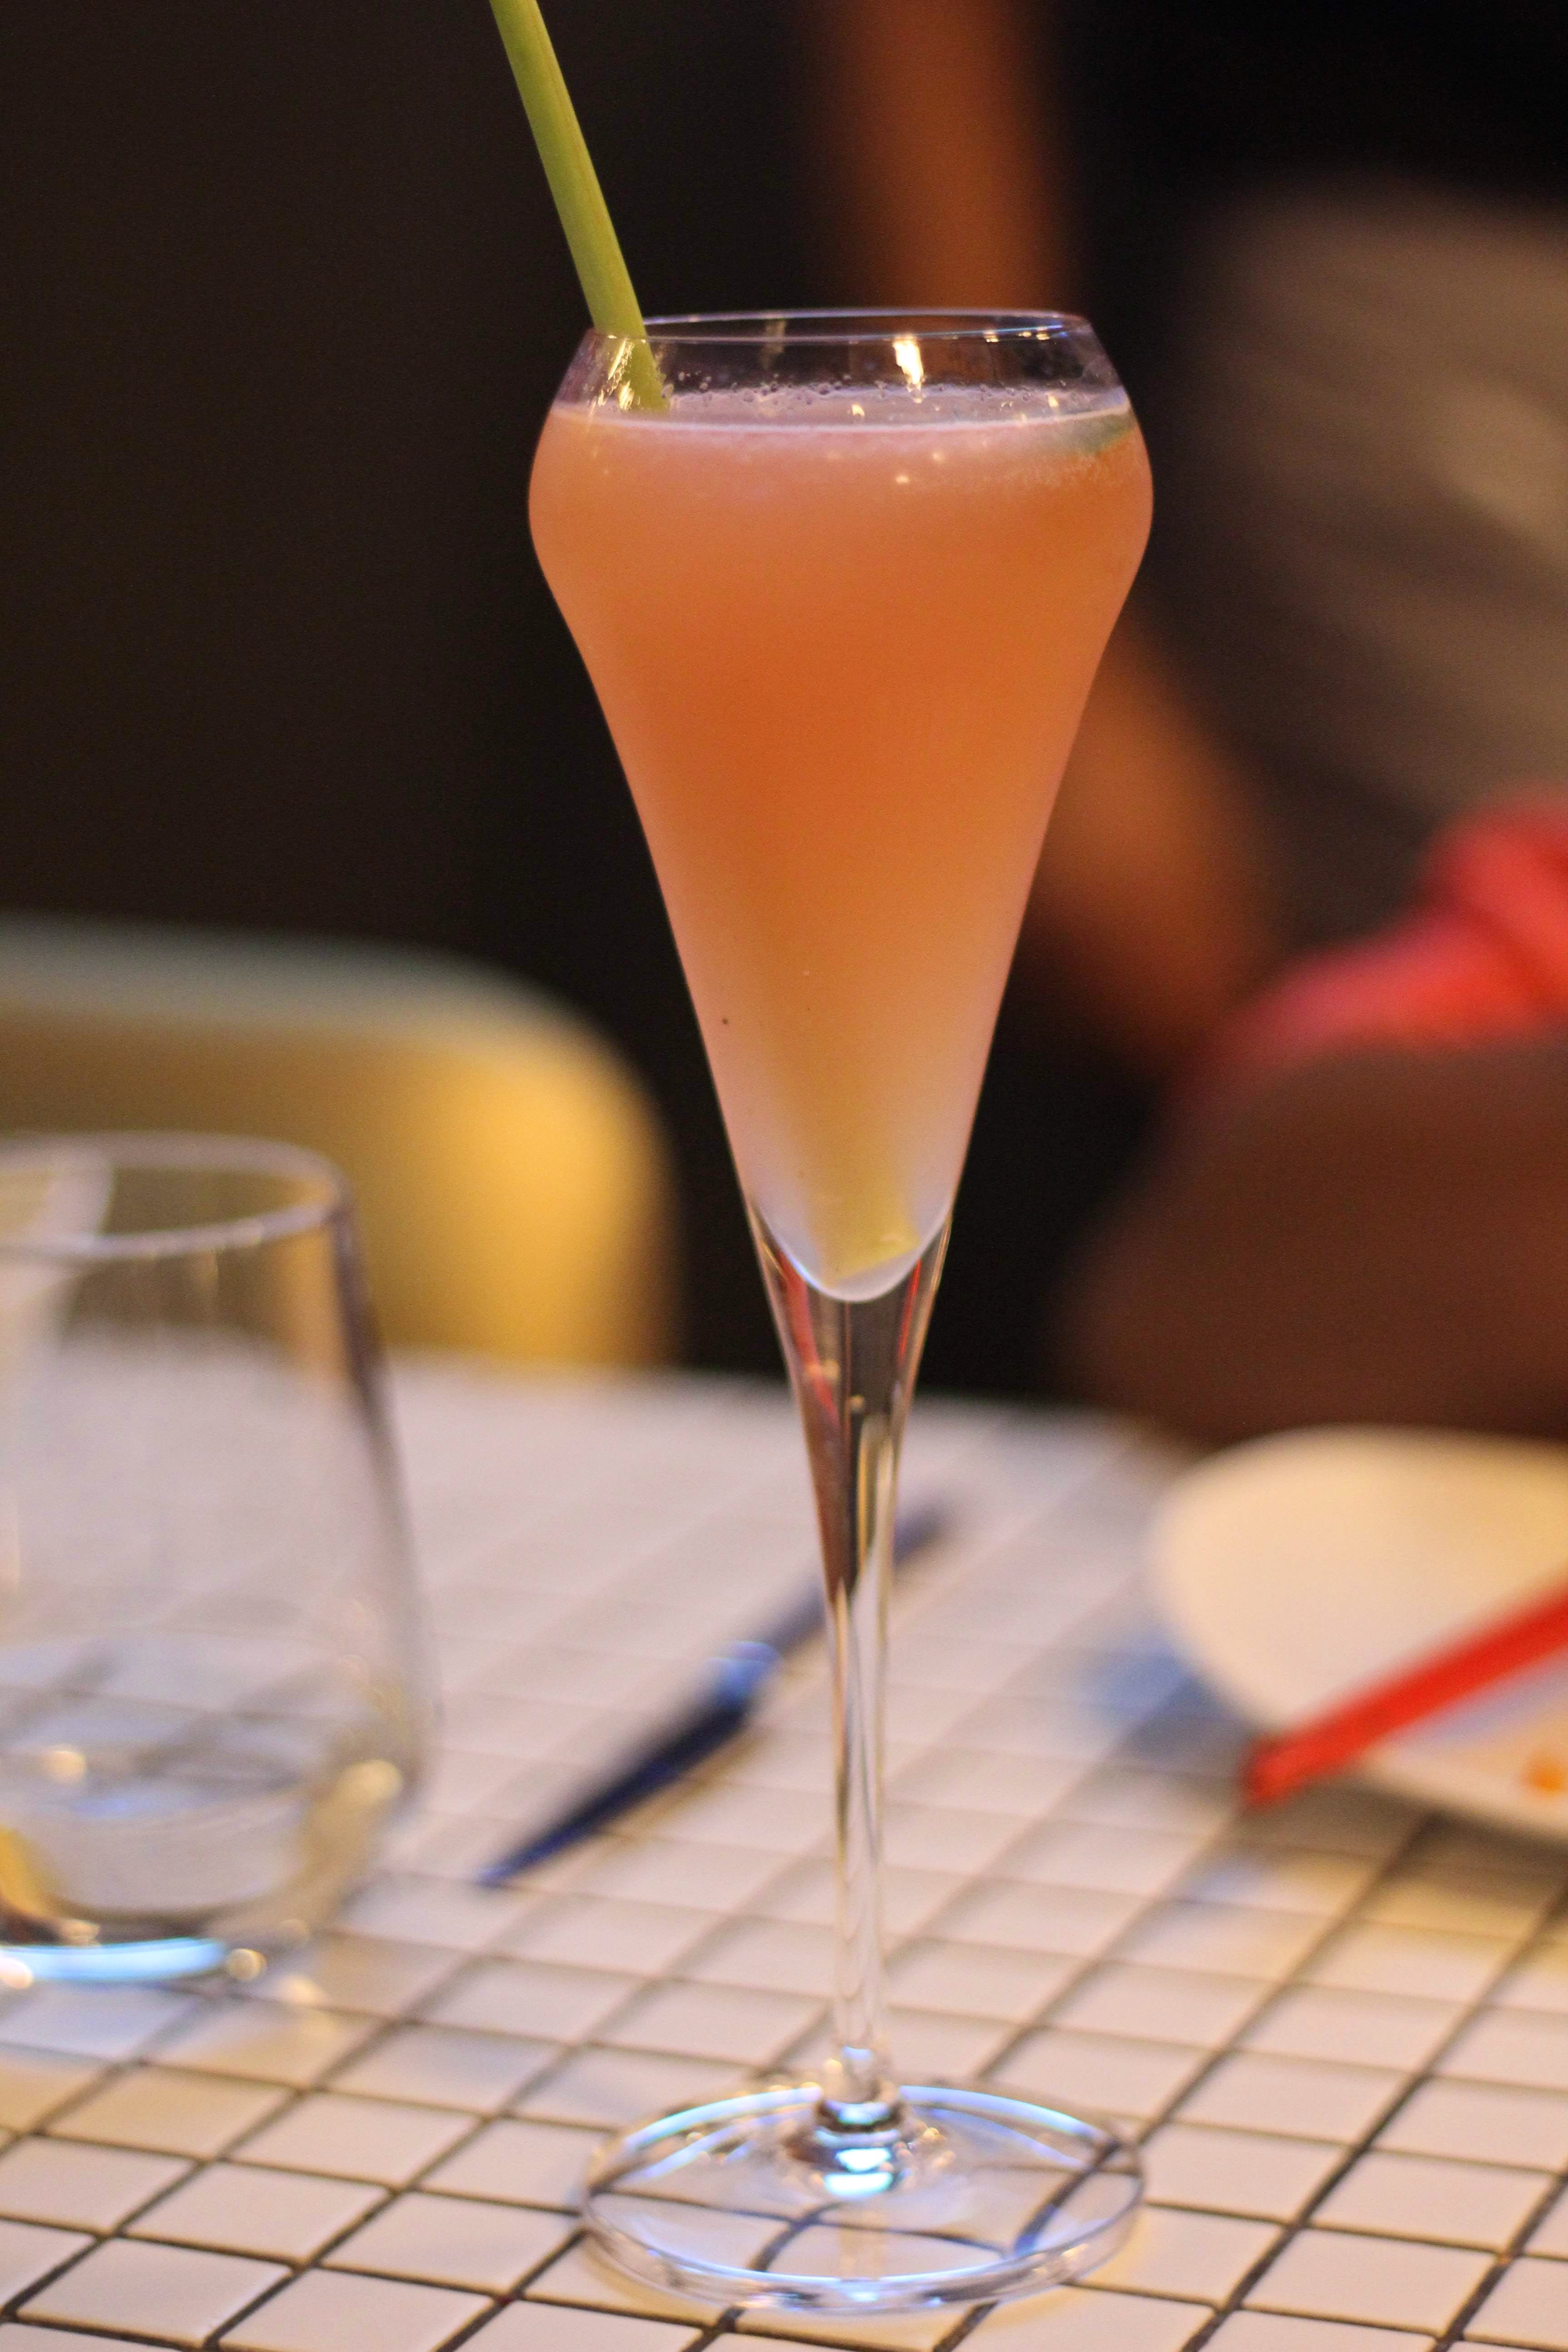 Drink,Alcoholic beverage,Cocktail,Non-alcoholic beverage,Classic cocktail,Bellini,Food,Juice,Distilled beverage,Champagne cocktail